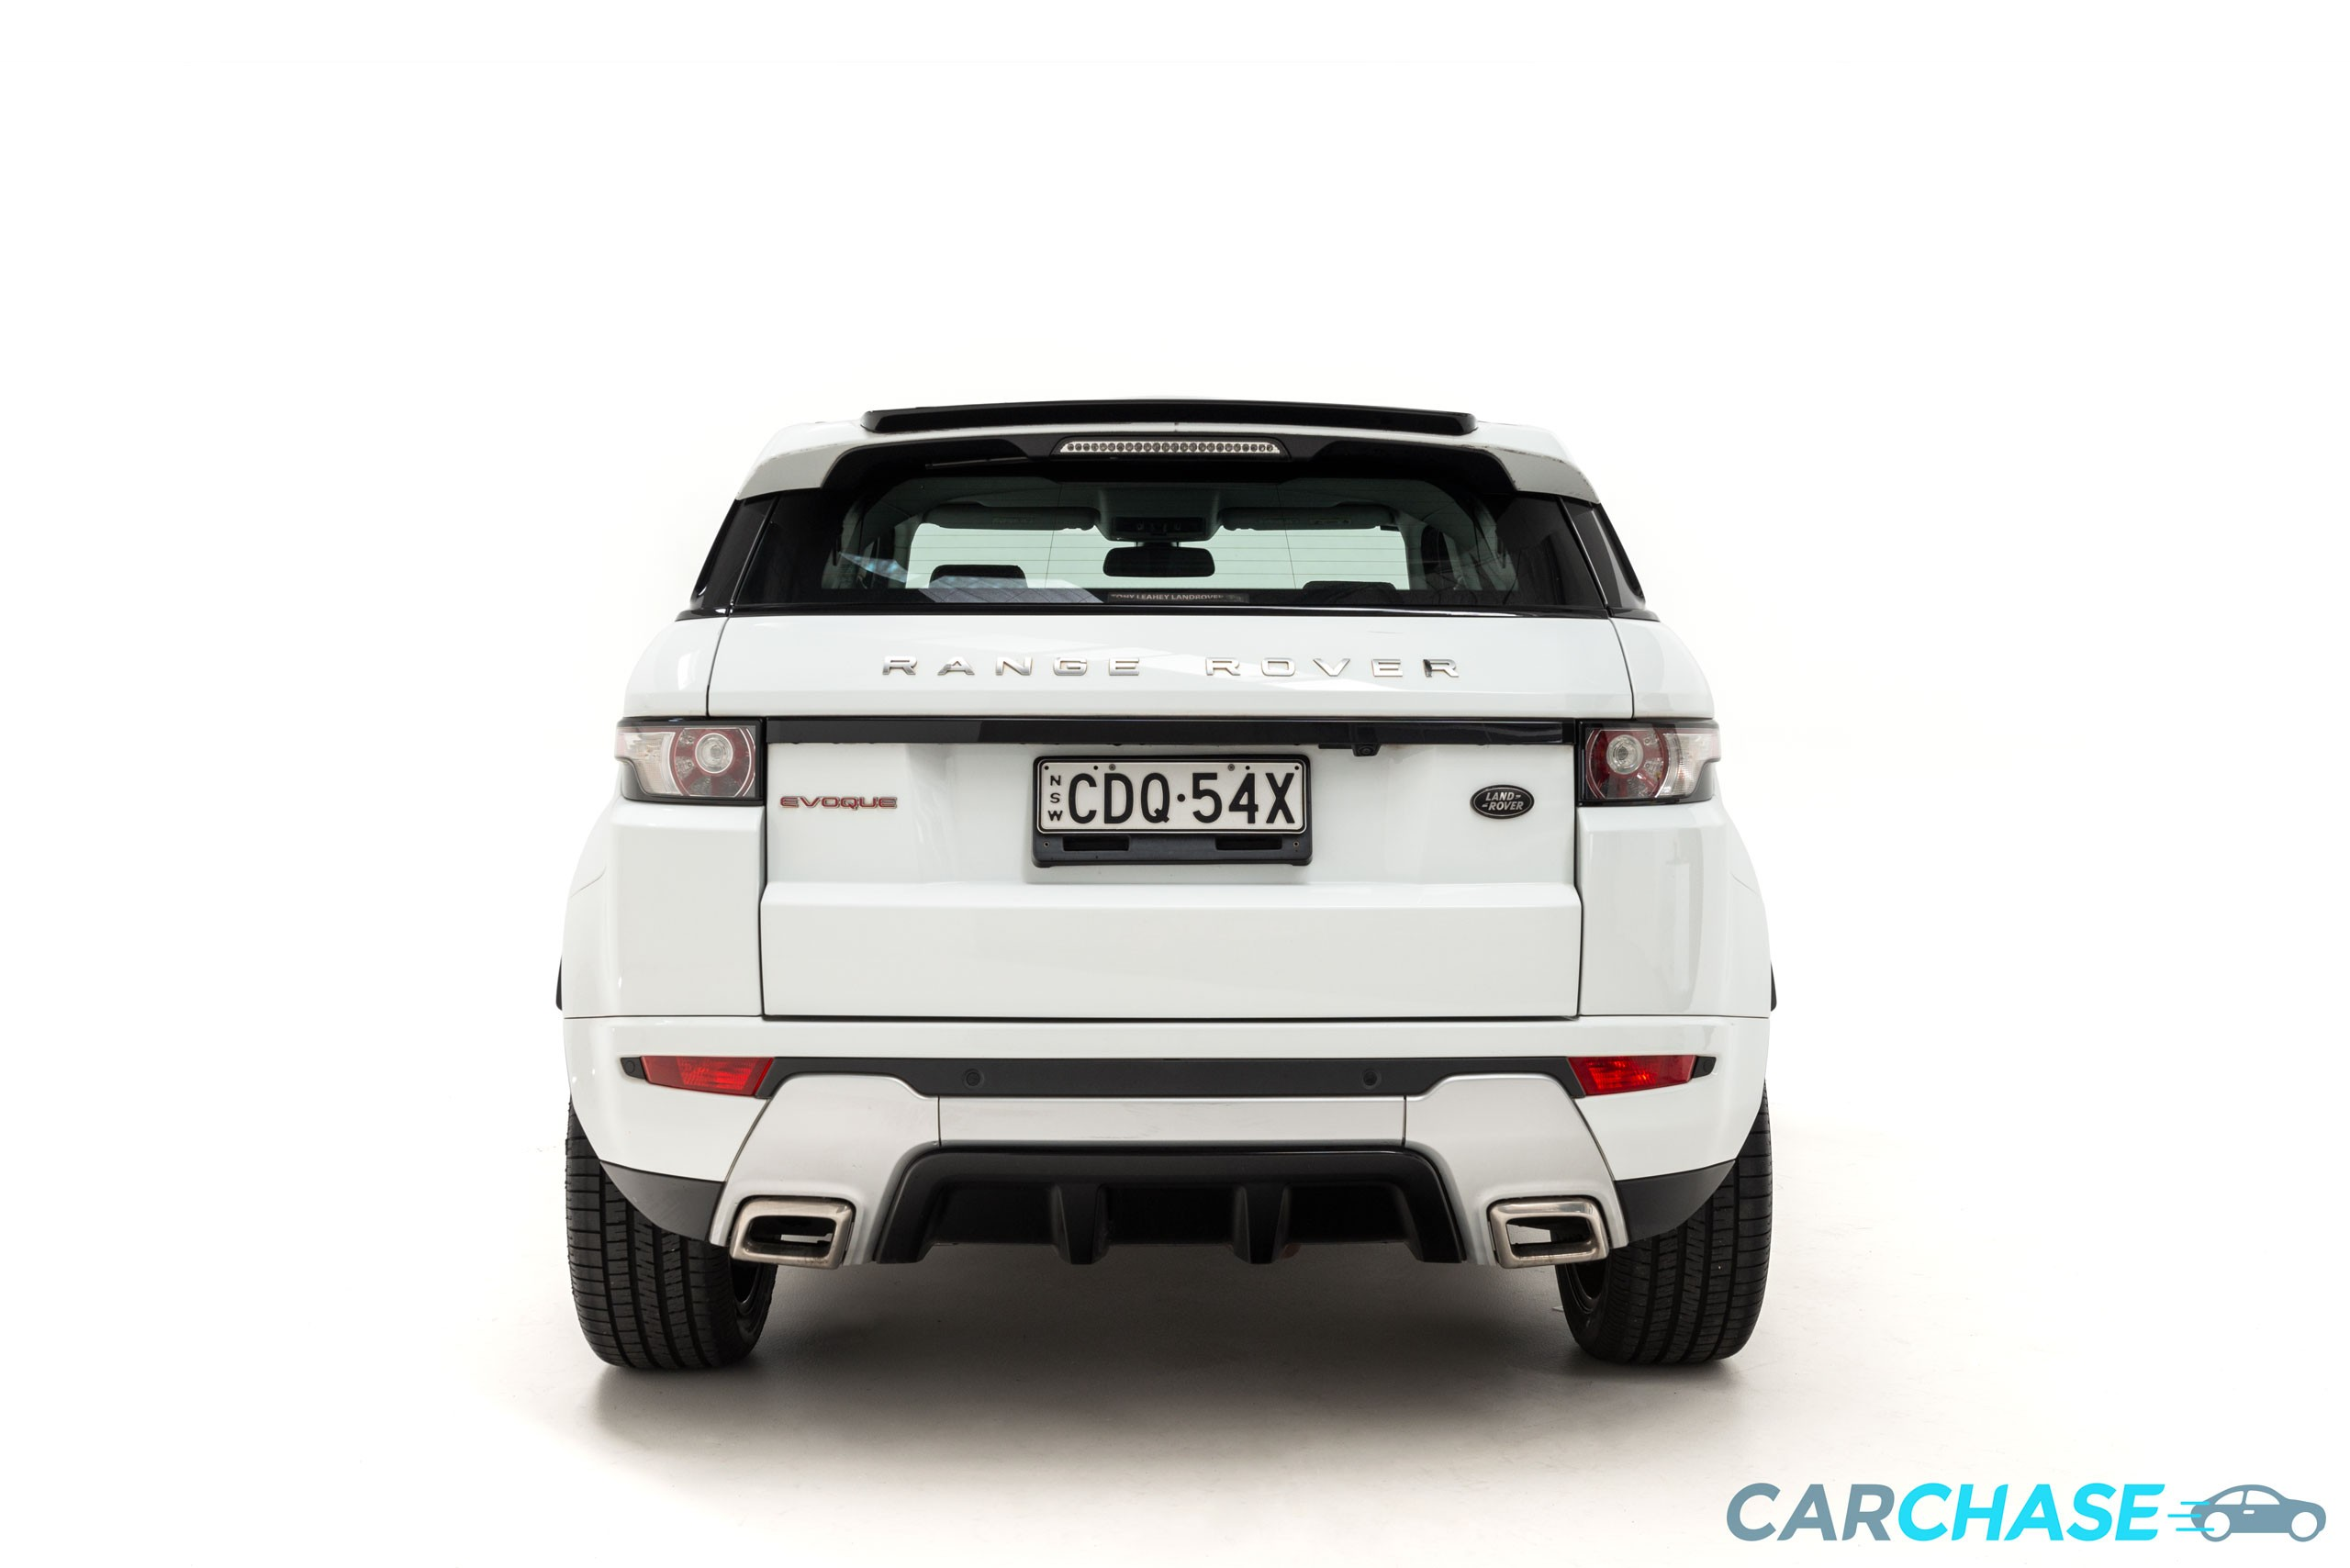 Image of back profile of 2013 Land Rover Range Rover Evoque SD4 Dynamic